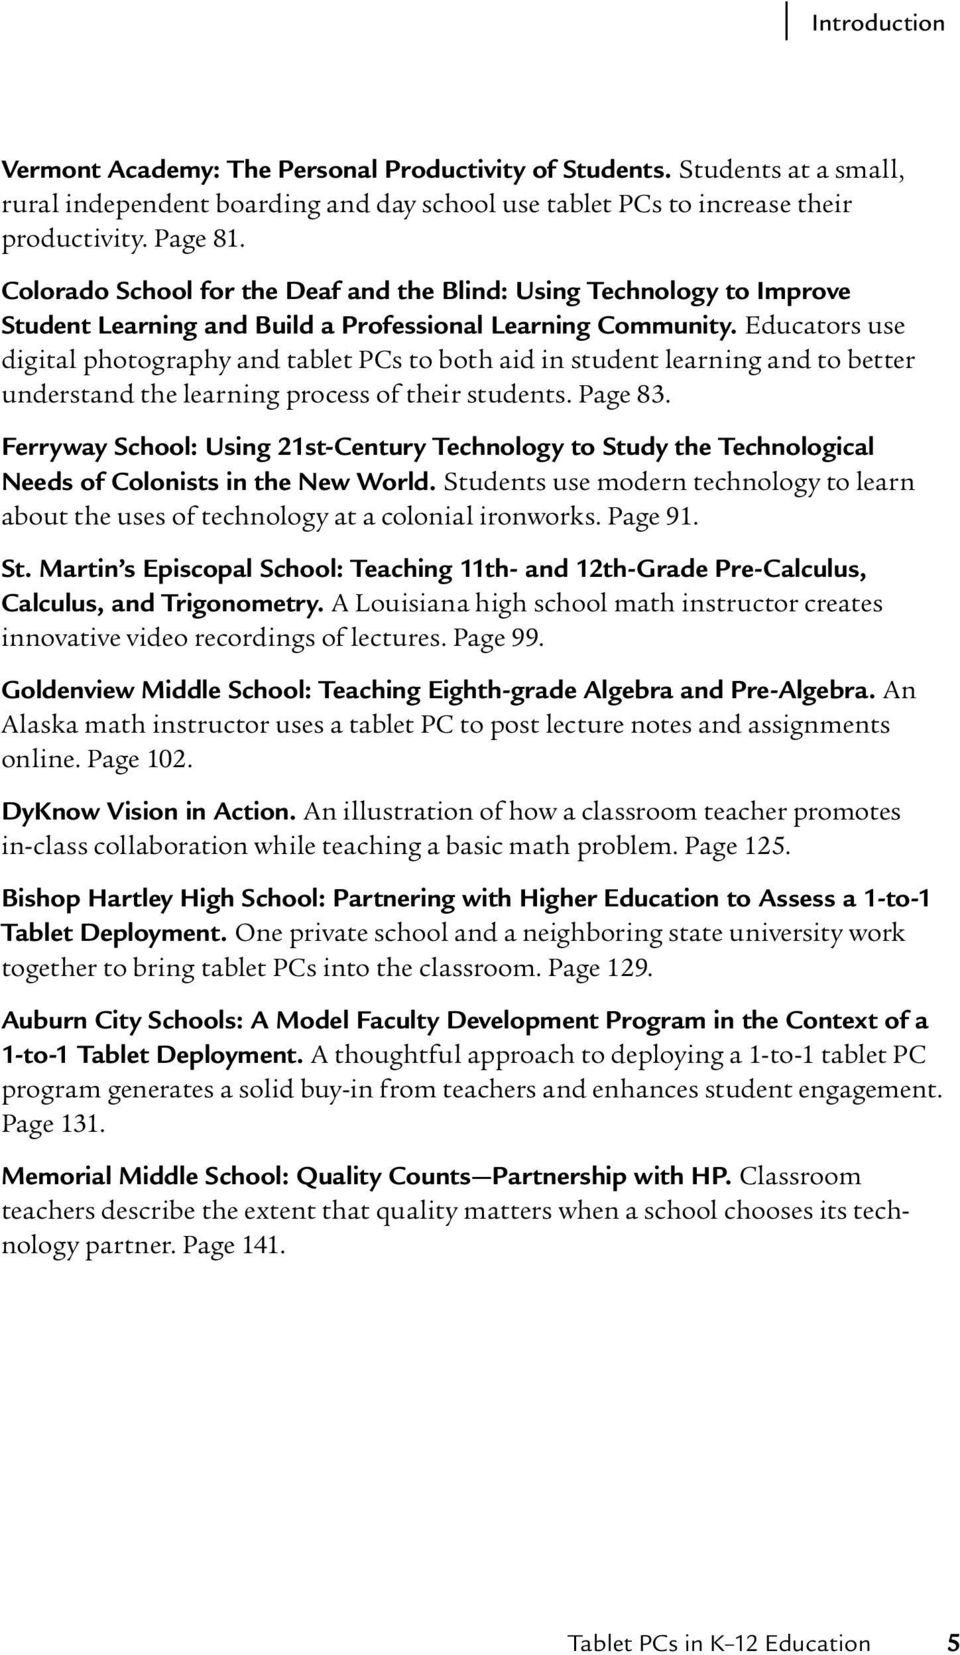 Educators use digital photography and tablet PCs to both aid in student learning and to better understand the learning process of their students. Page 83.